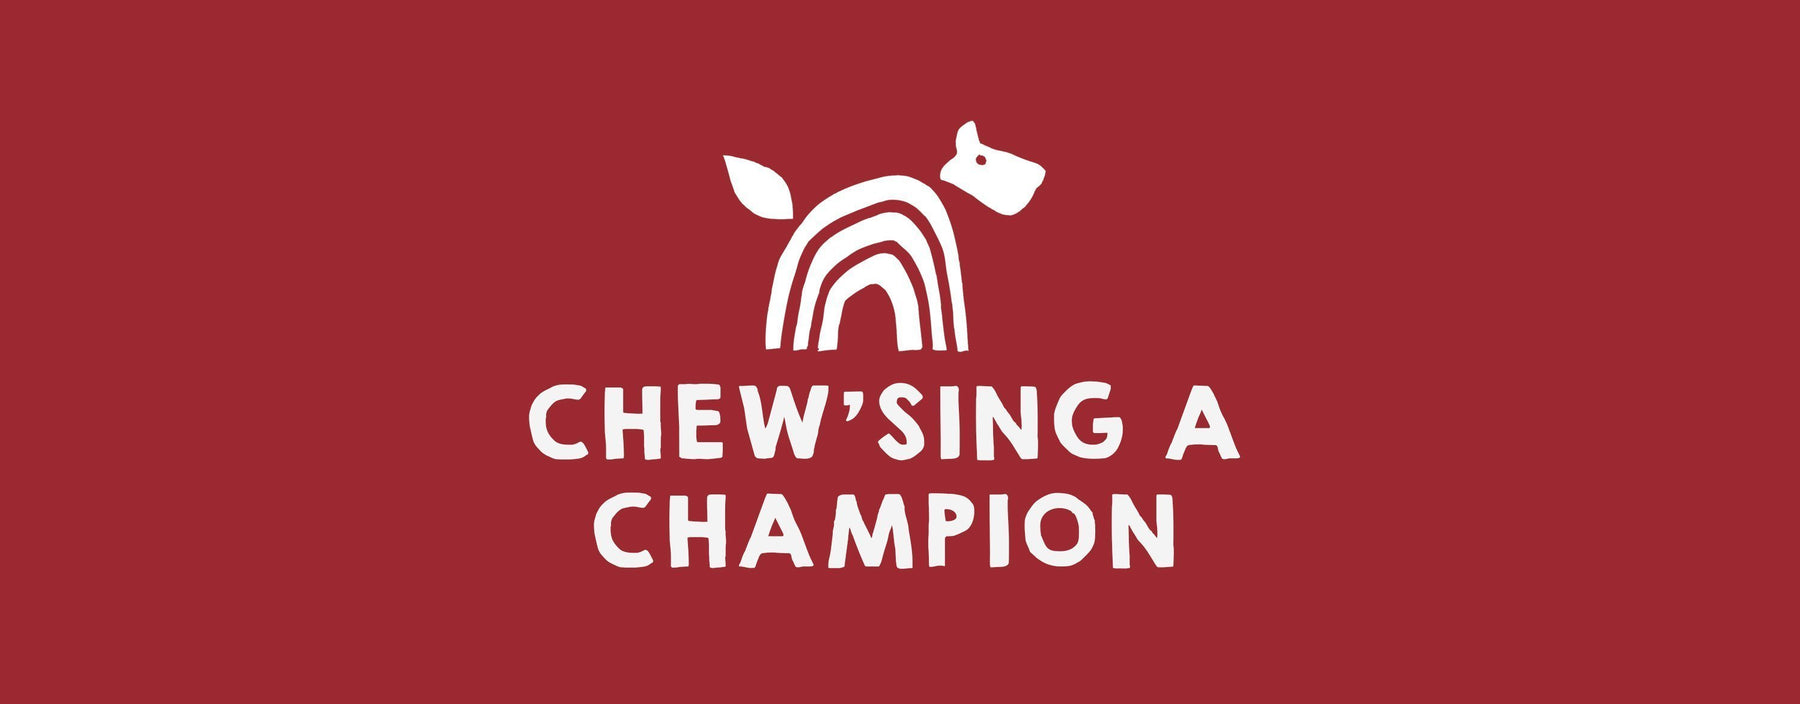 Chew'sing a Champion